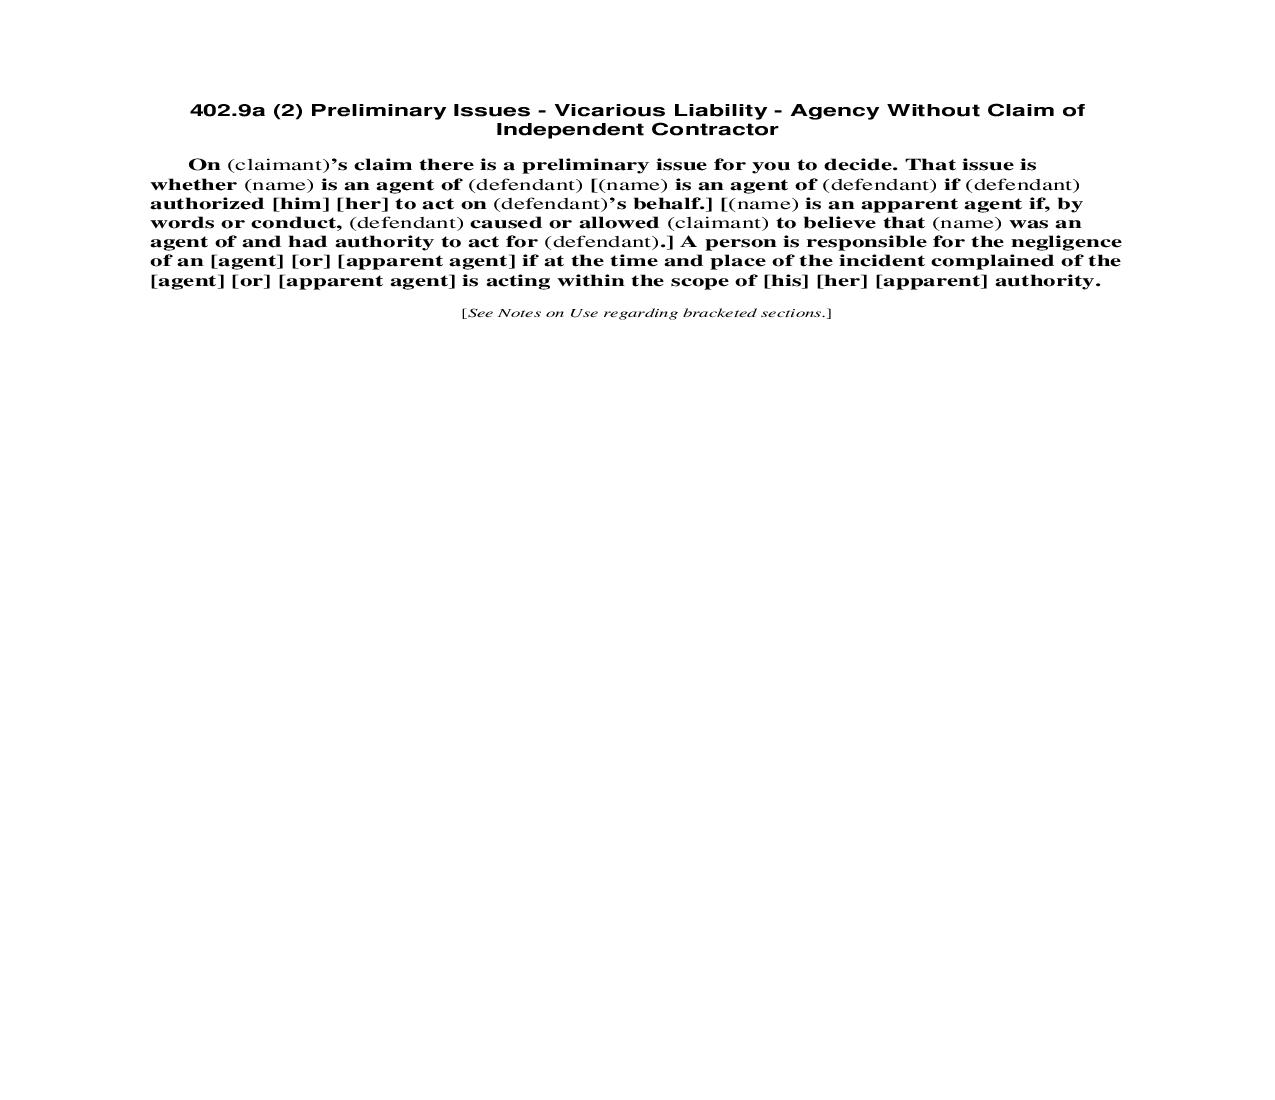 402.9a (2) Preliminary Issues - Vicarious Liability - Agency Without Claim of Independent Contractor | Pdf Doc Docx | Florida_JI